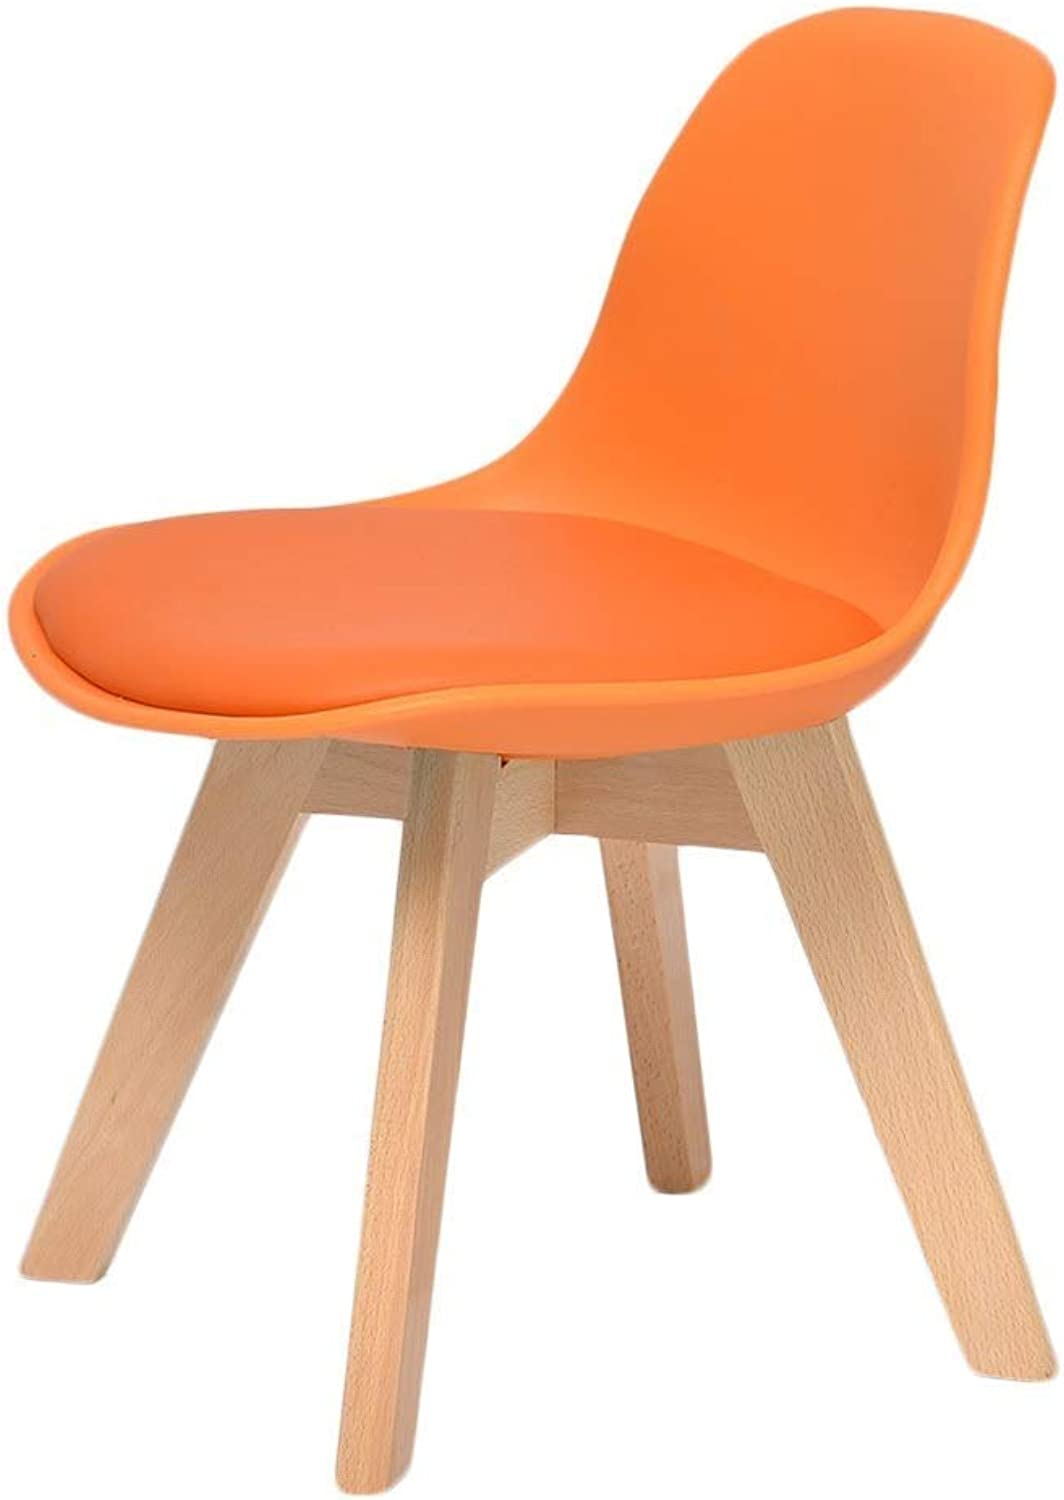 RMJAI Small seat Household Stool Solid Wood Stool Dressing Stool Make-up Stool Cloth Northern Europe Stool Stool Suitable for Living Room Kitchen Bedroom(16.5x12.9x21.6 inches) (color   orange)